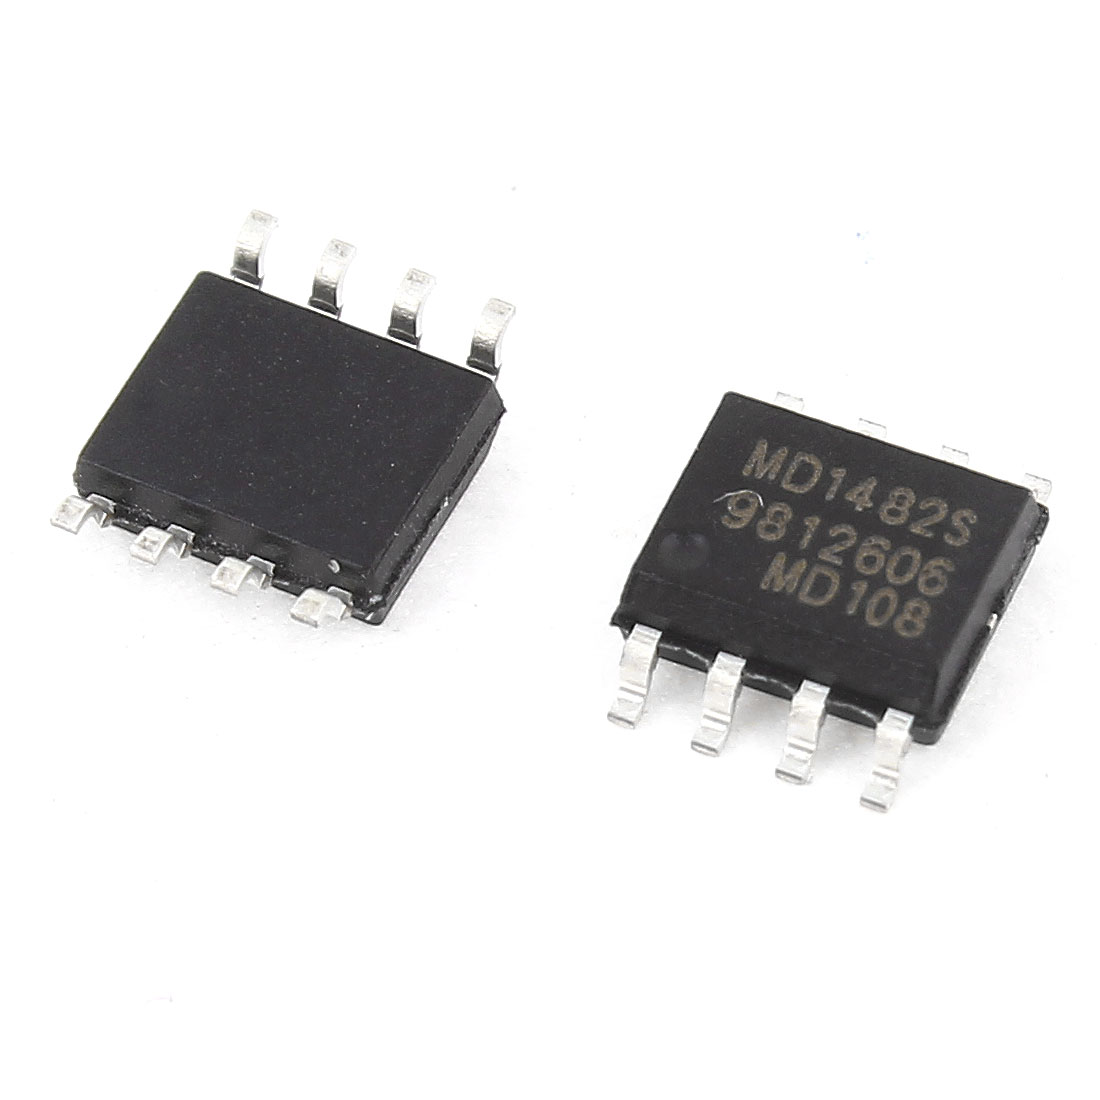 2Pcs MP1482 SOP-8 Synchronous Rectified Step-Down Converter